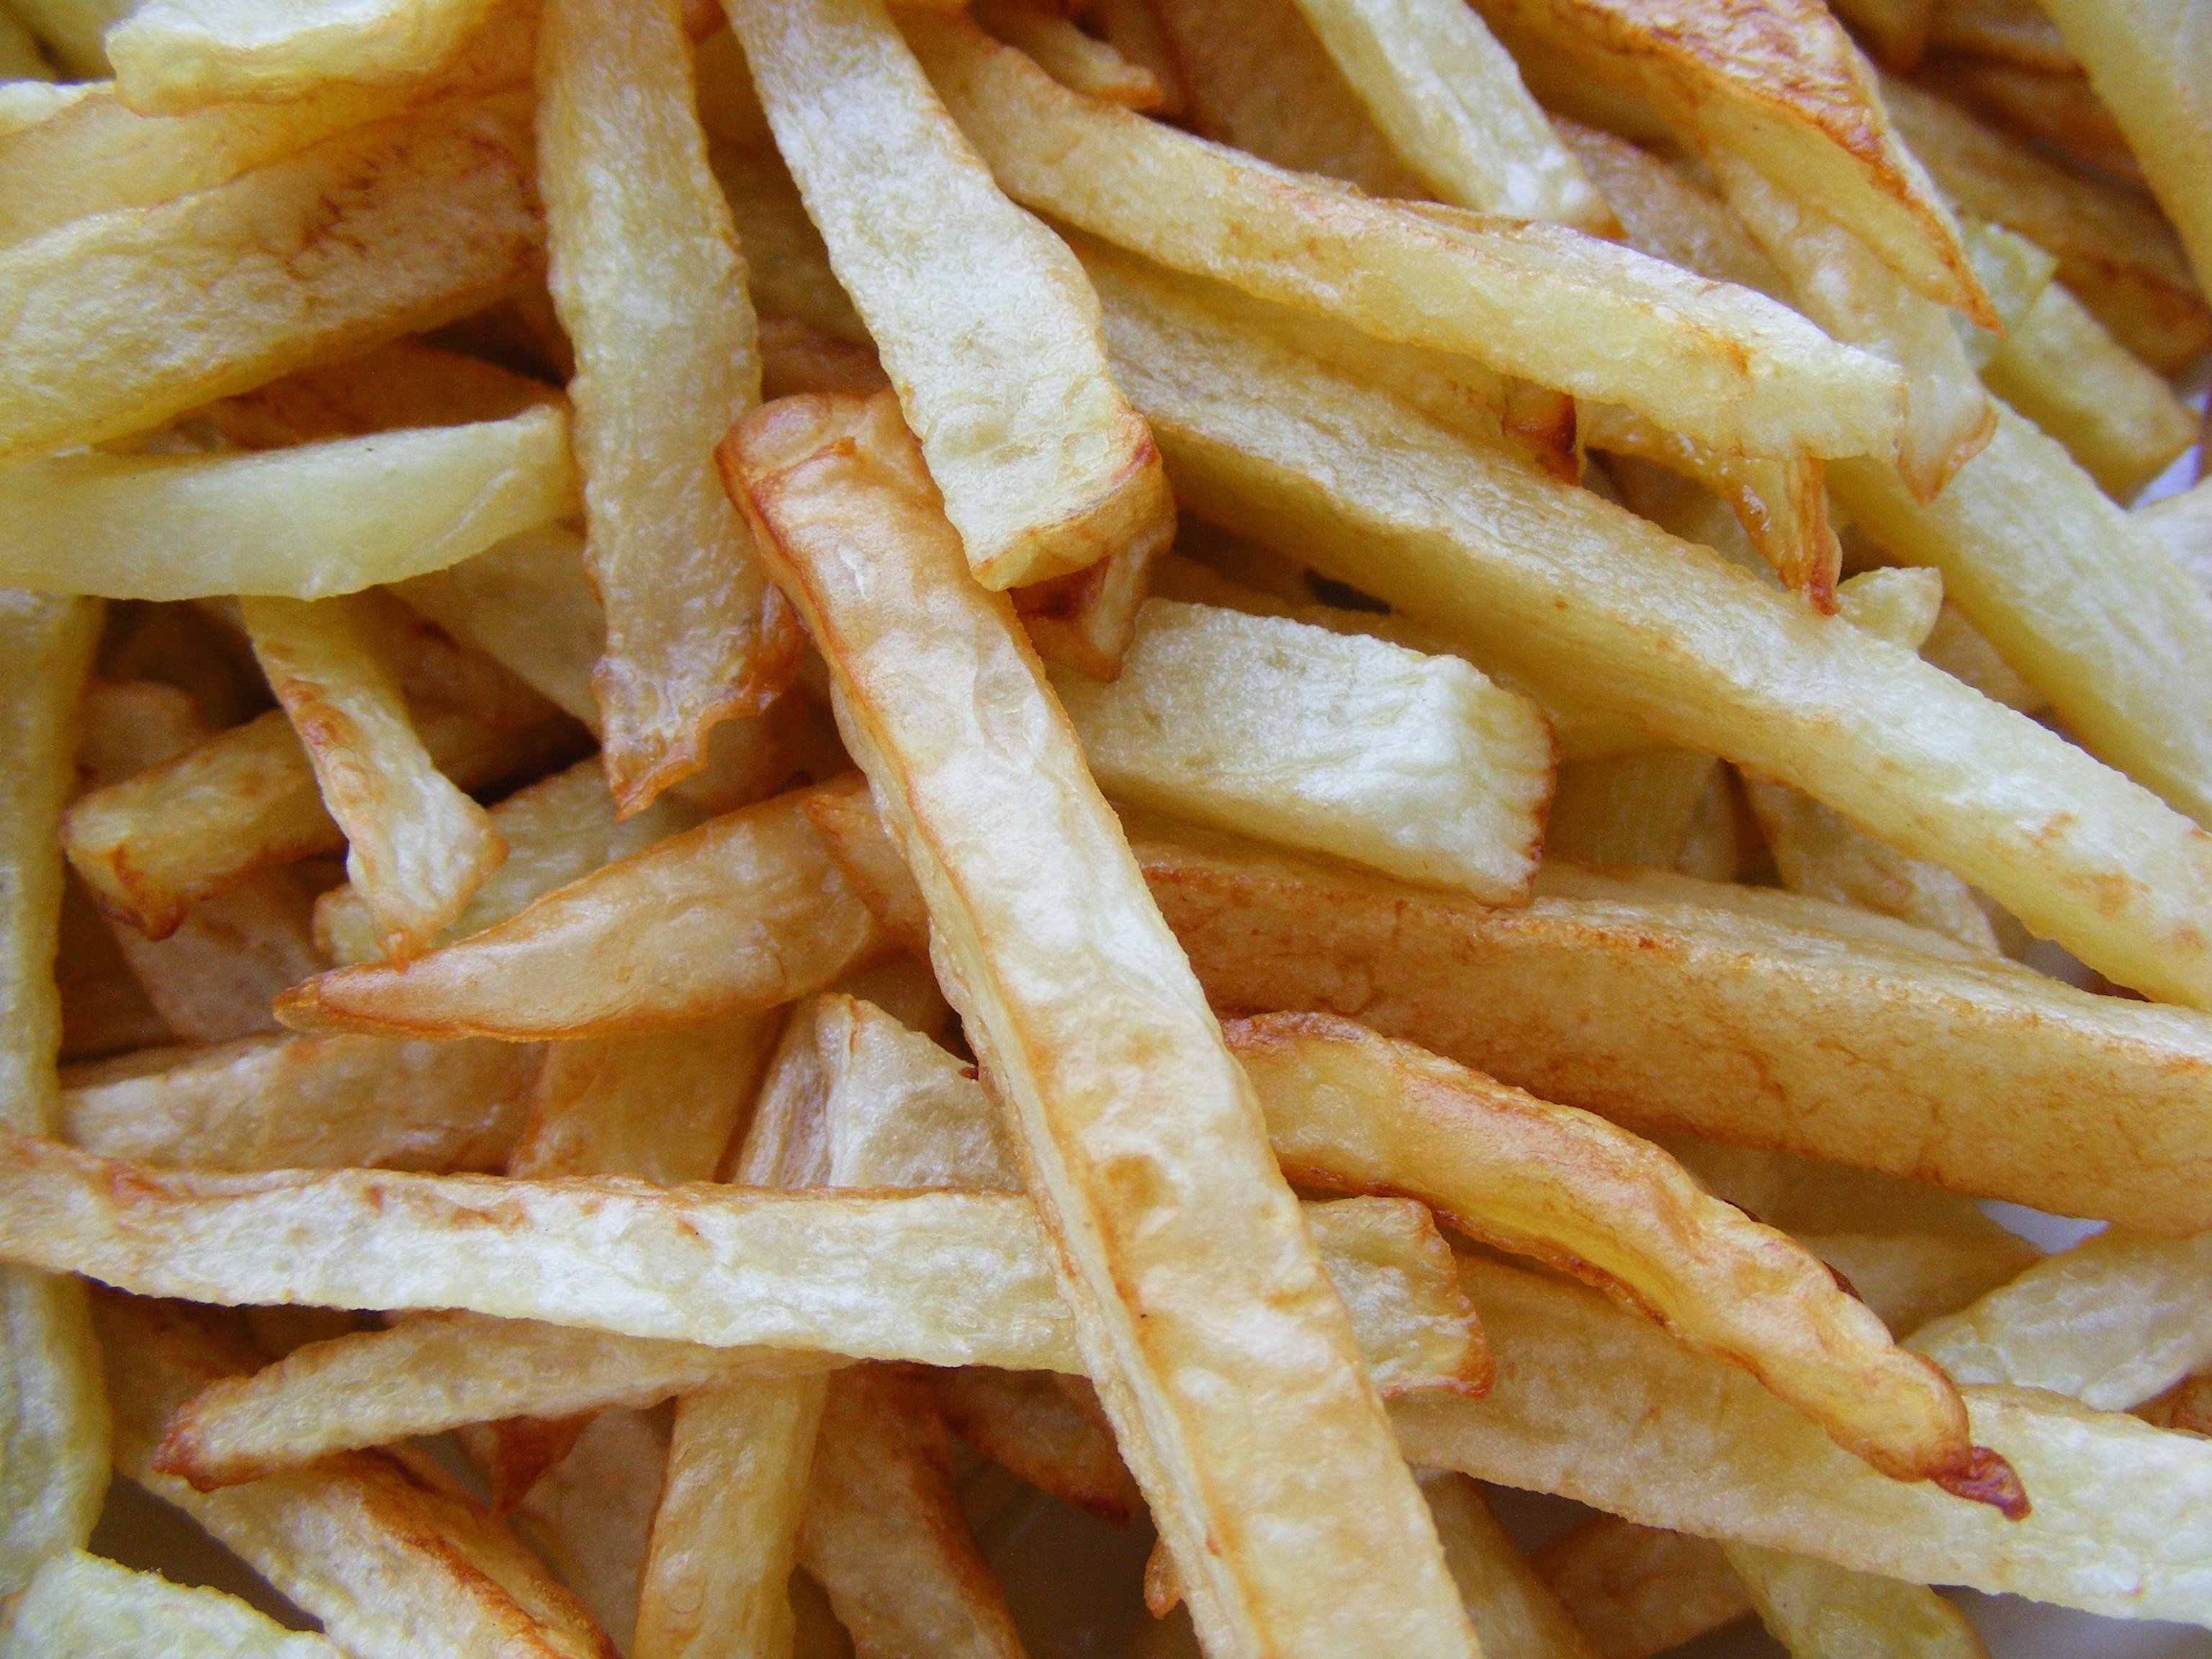 Least Healthy Fast Food French Fries